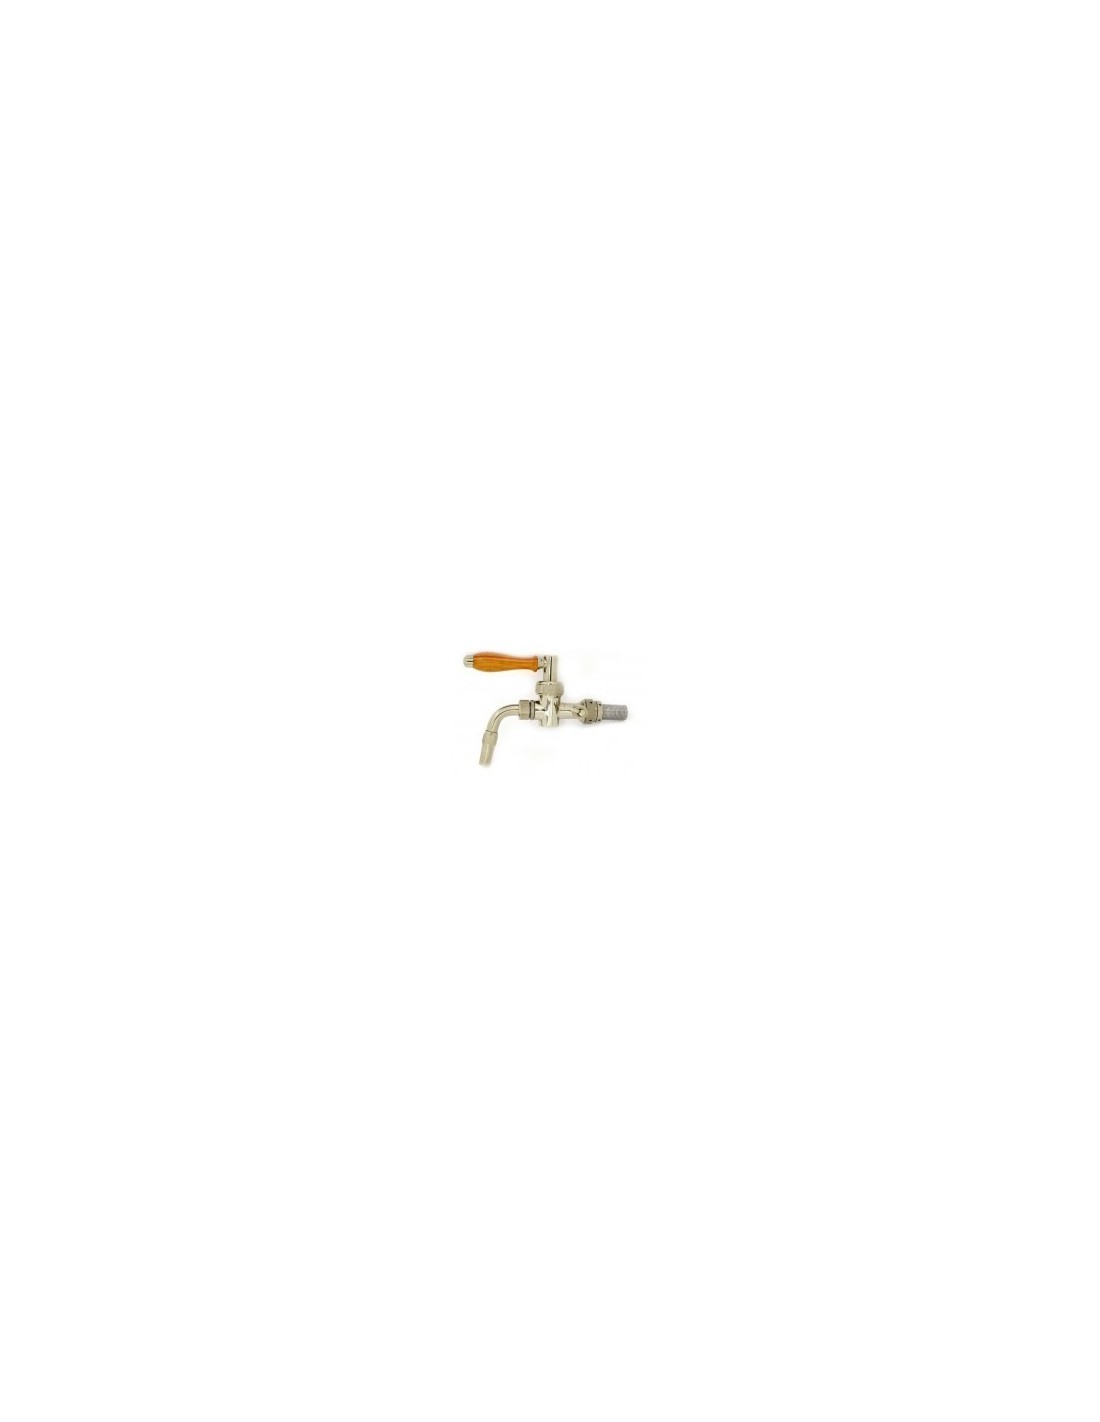 """KOH00595 - Beer tap """"Nostalgie"""" with chrome finish 5/8-35 mm, normal spout"""